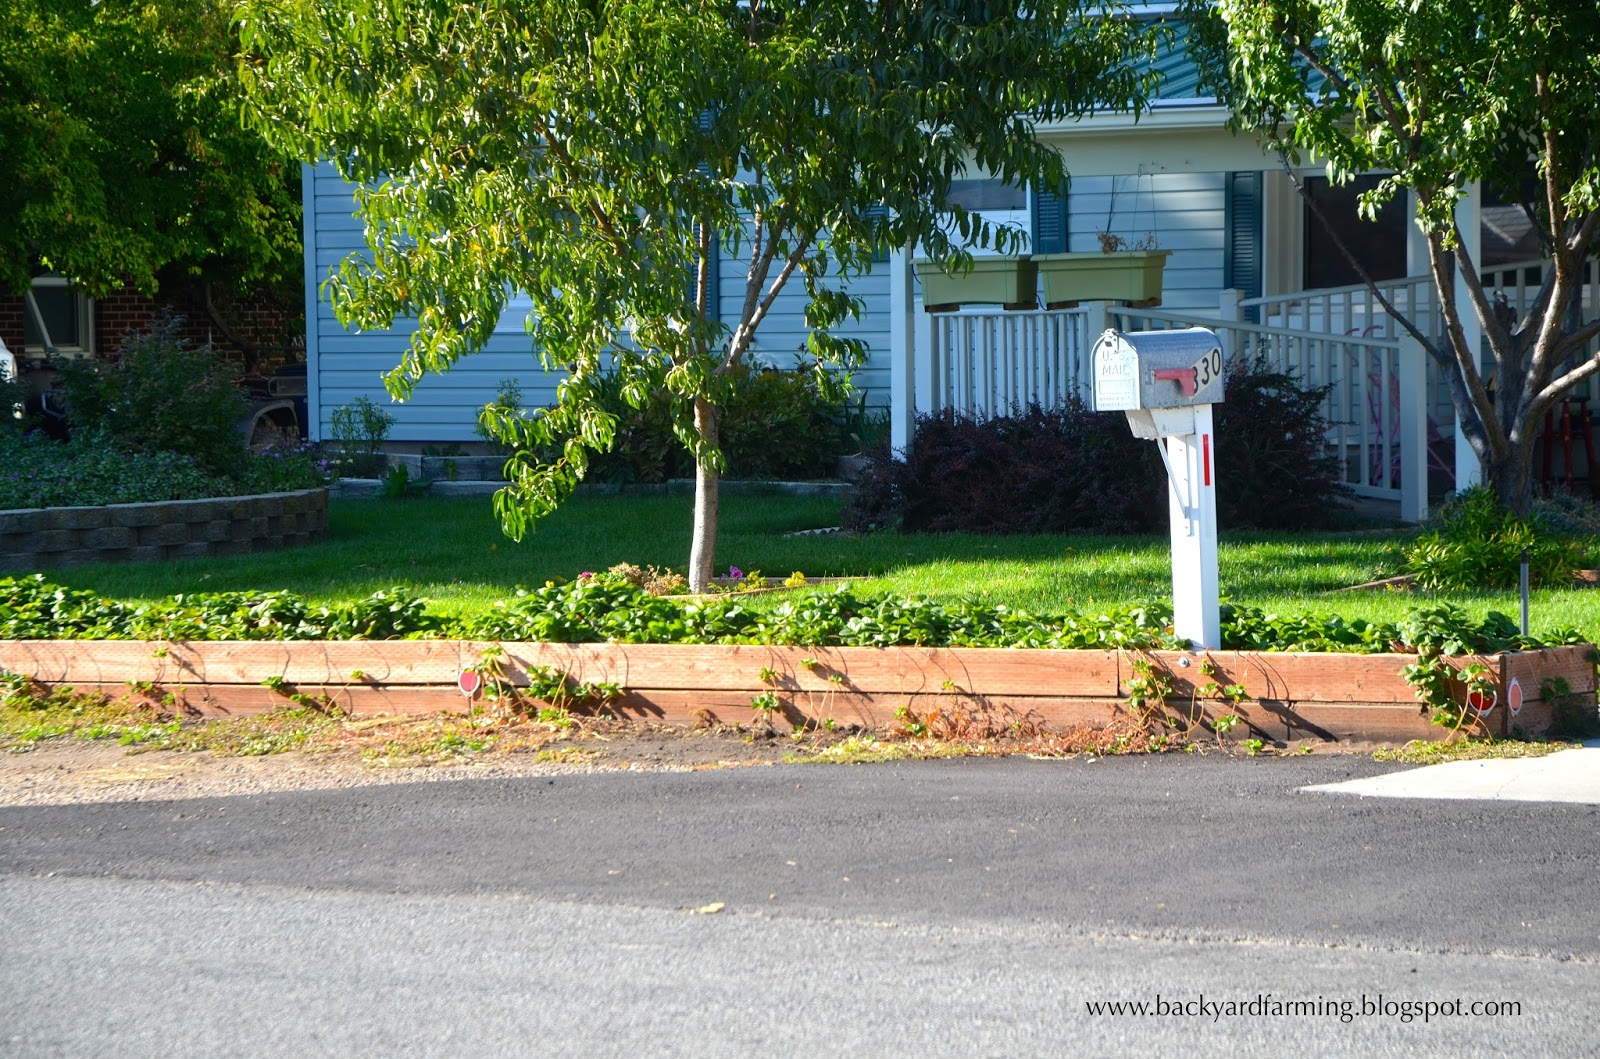 this yard in contrast shows a great use of the narrow parking strip